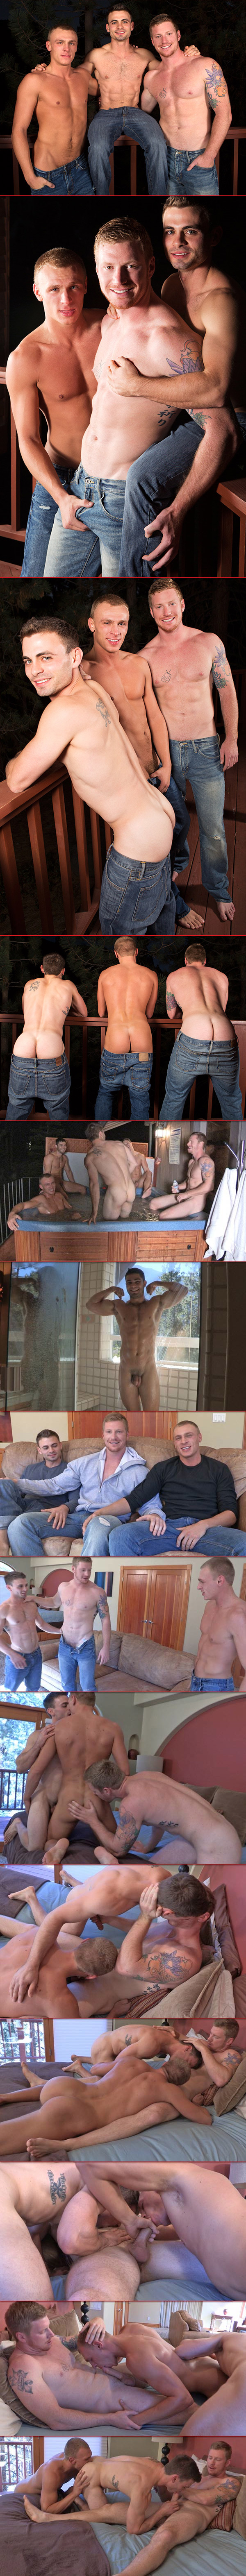 mountain-GA1-seancody-02